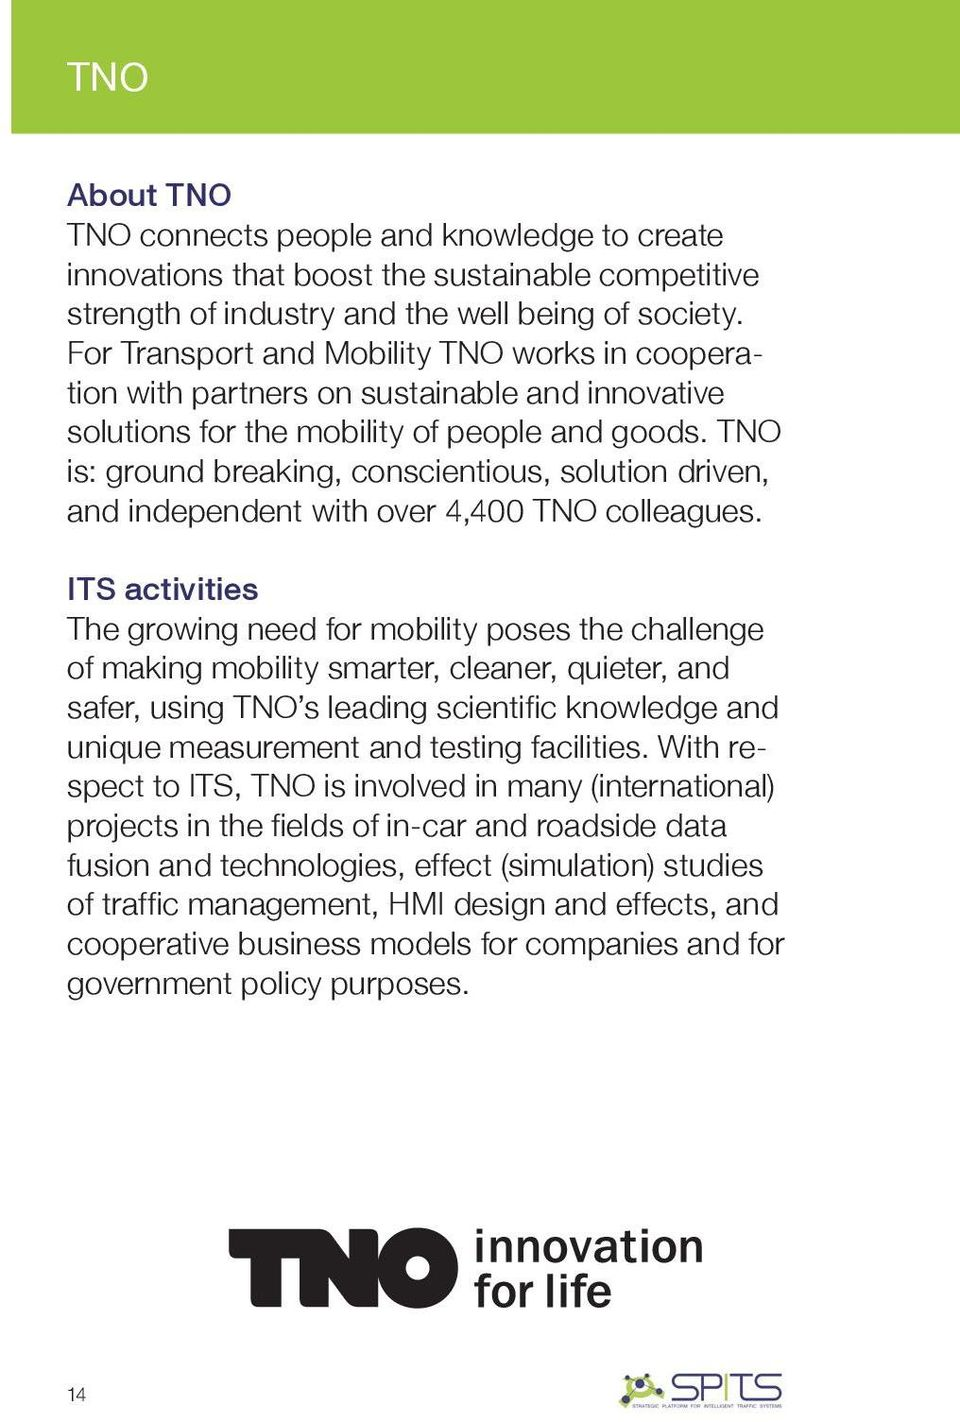 TNO is: ground breaking, conscientious, solution driven, and independent with over 4,400 TNO colleagues.